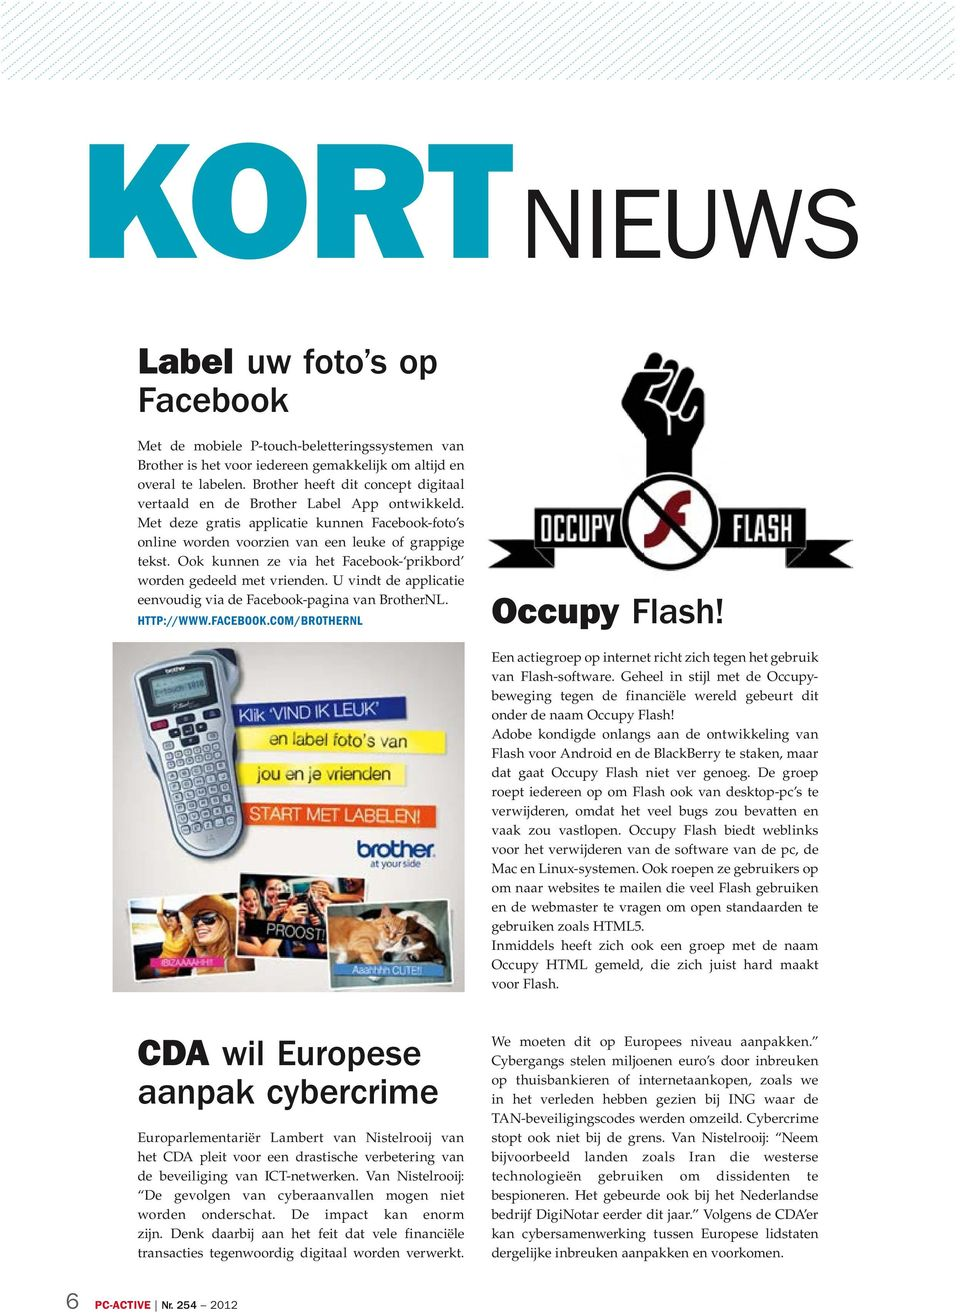 Ook kunnen ze via het Facebook- prikbord worden gedeeld met vrienden. U vindt de applicatie eenvoudig via de Facebook-pagina van BrotherNL. HTTP://WWW.FACEBOOK.COM/BROTHERNL Occupy Flash!